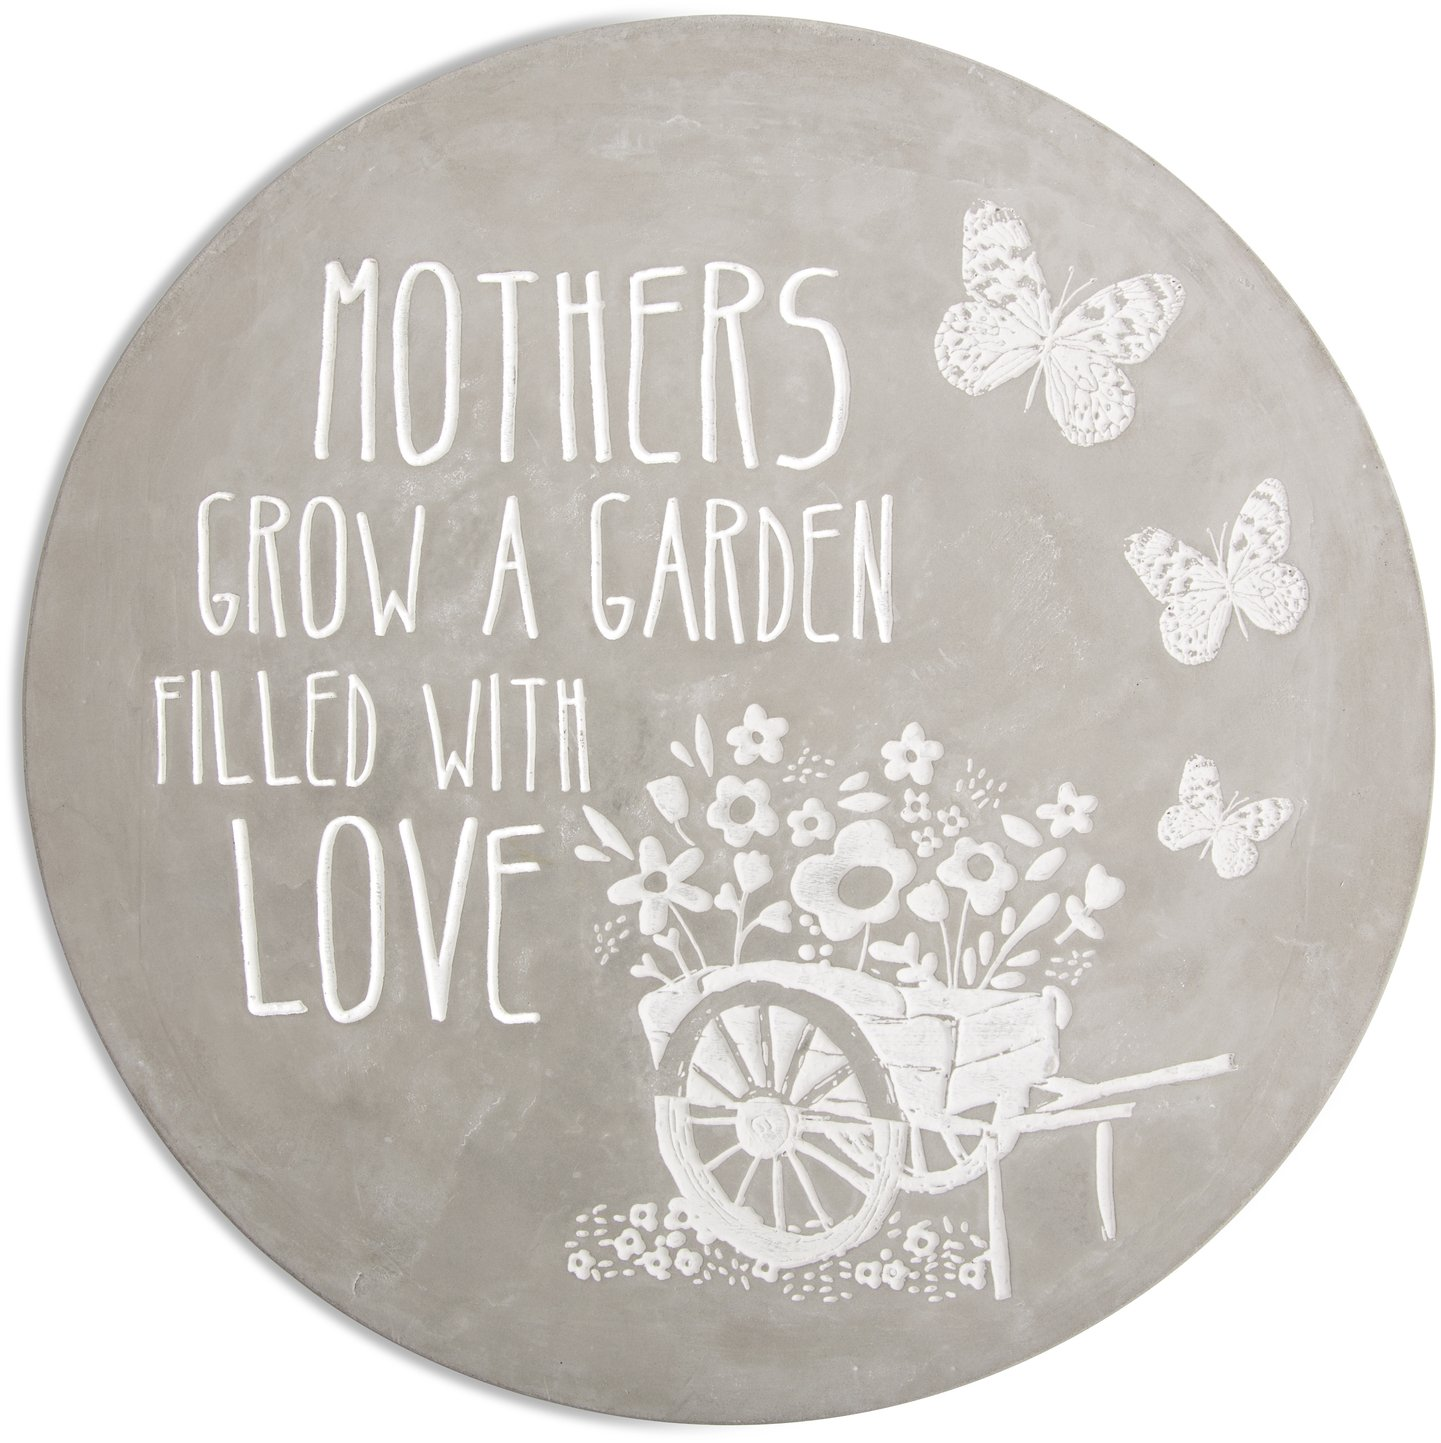 Pavilion Gift Company Mothers Grow a Garden Filled with Love Cement Stone